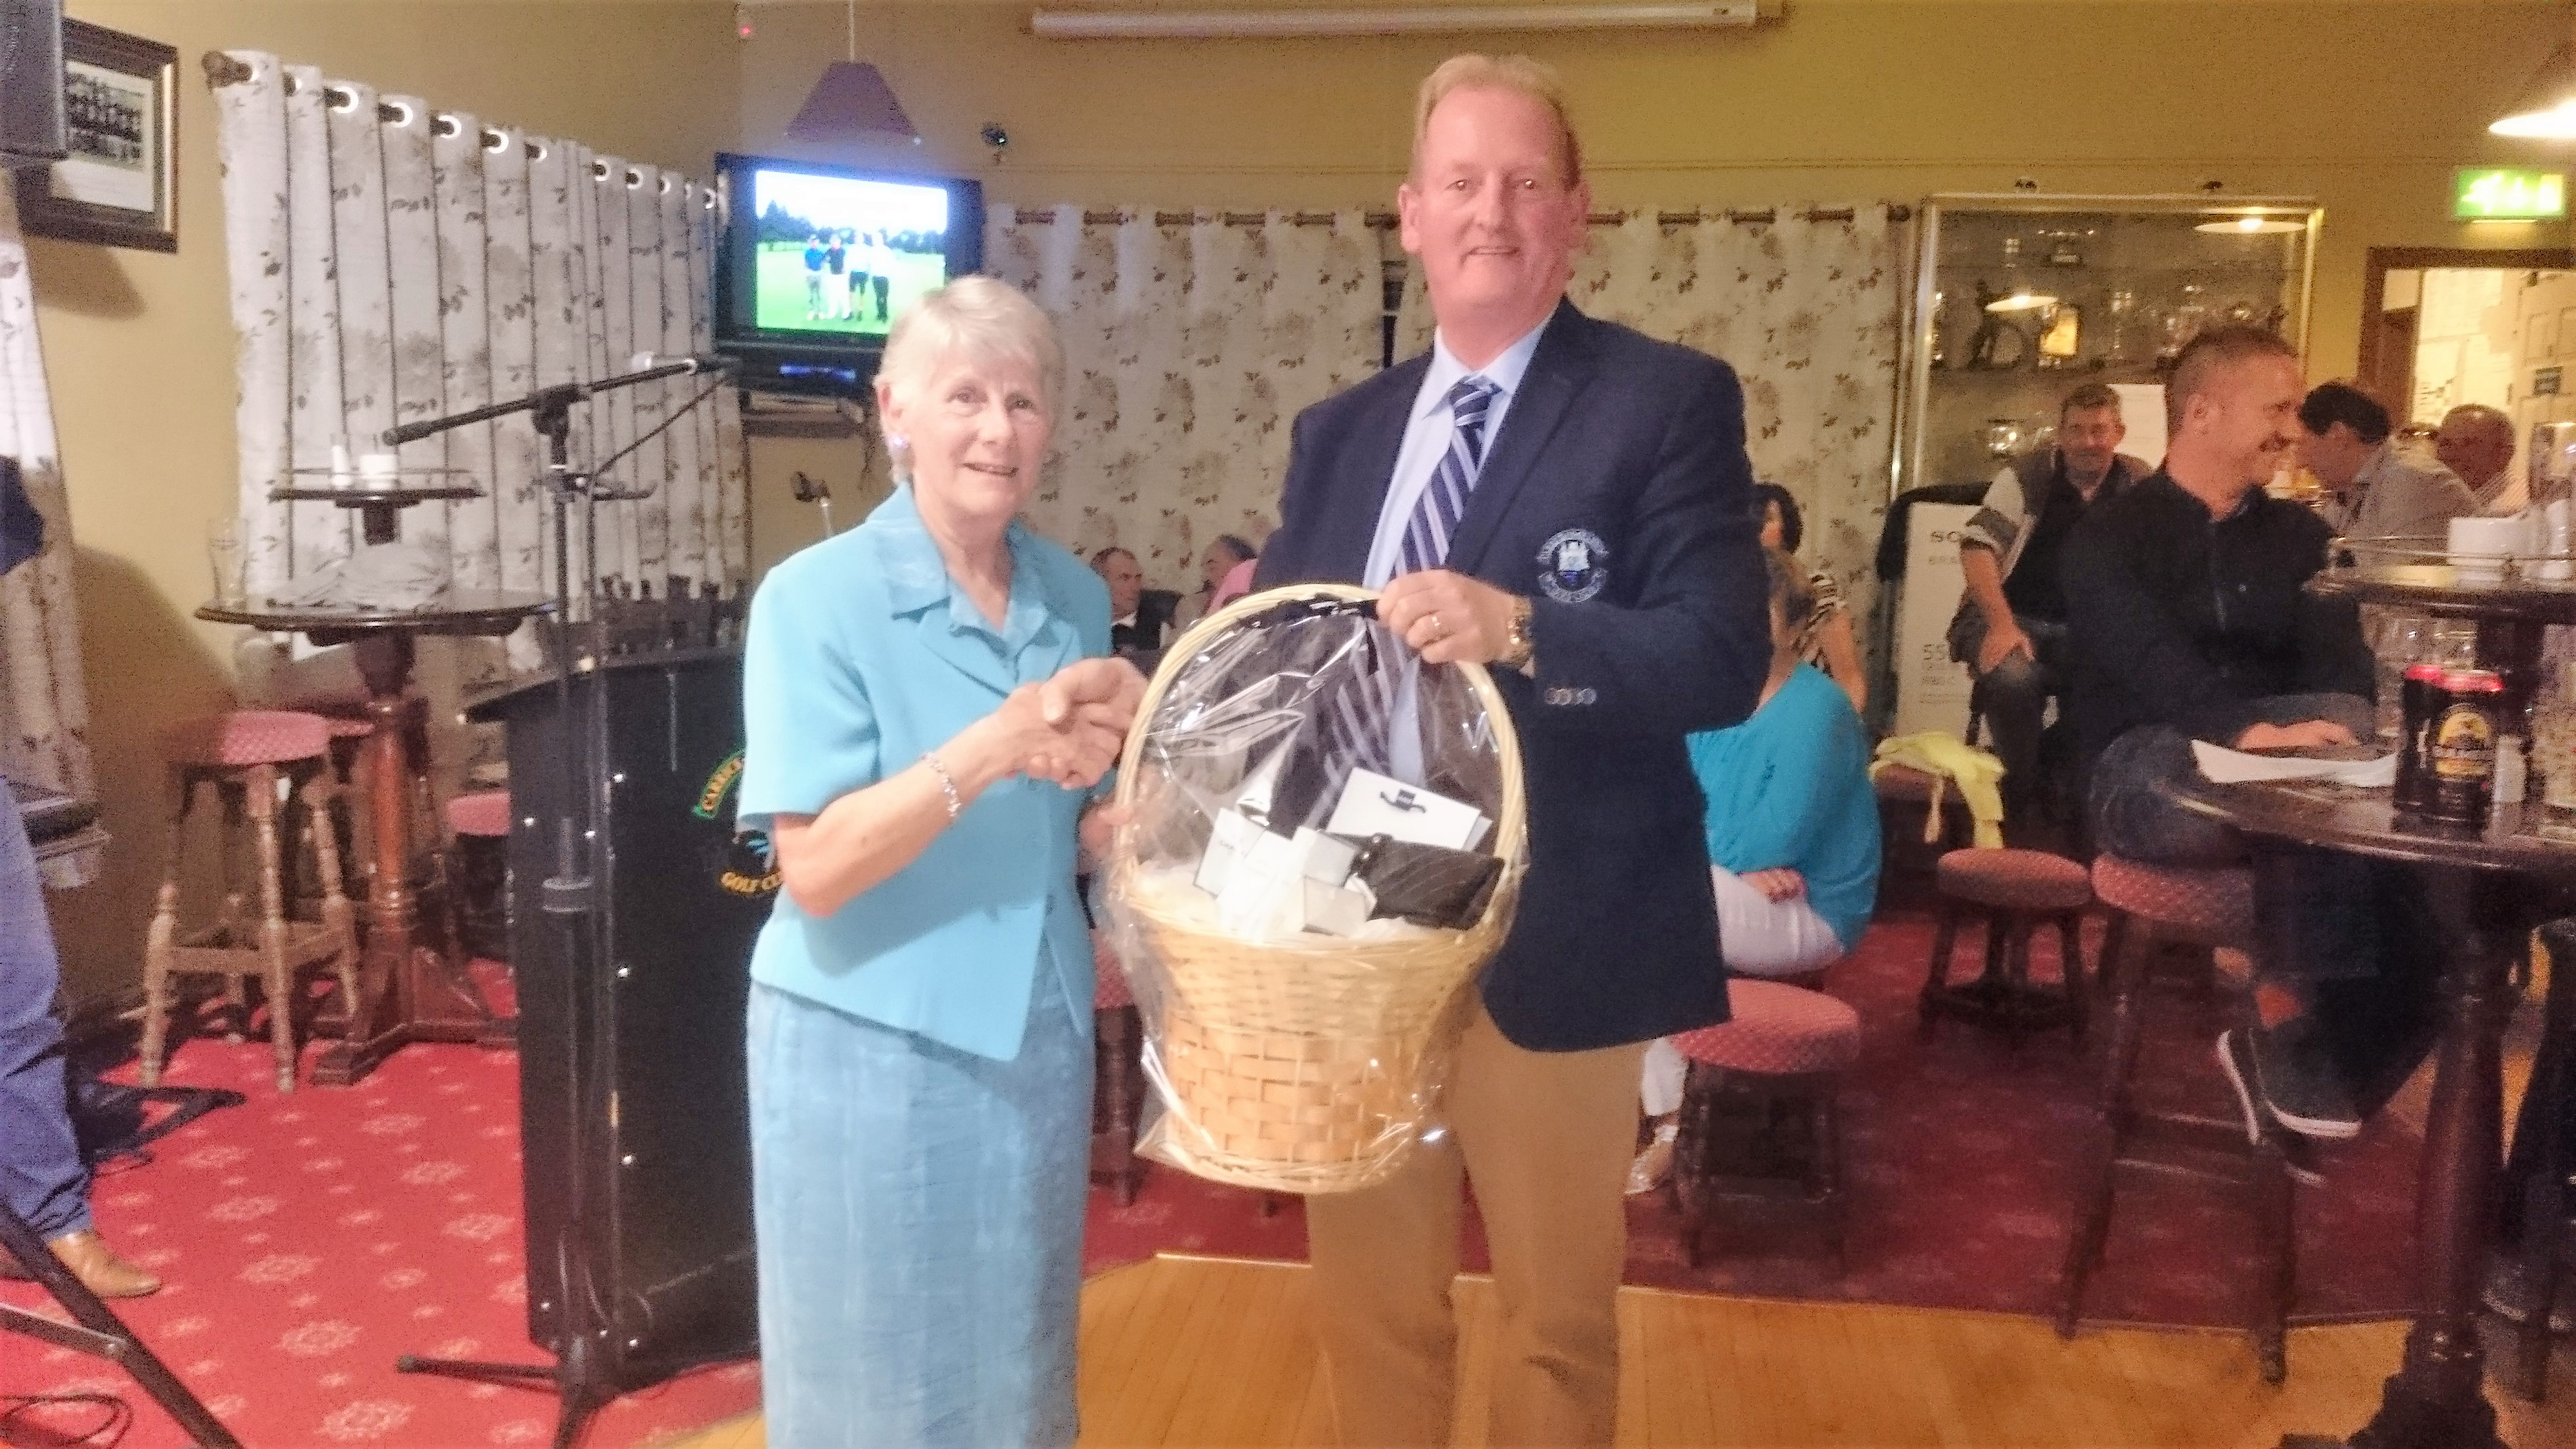 CAPTAIN'S PRIZE TO LADIES: Mary O'Rourke(WINNER), Captain Damien Duignan